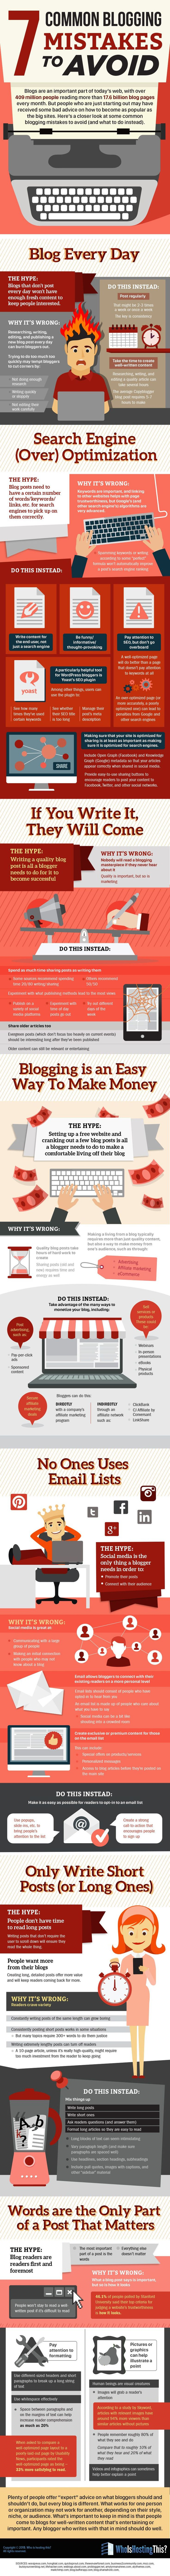 Digital-Marketing-7-Common-Blogging-Mistakes-To-Avoid Digital Marketing : 7 Common Blogging Mistakes To Avoid - infographic